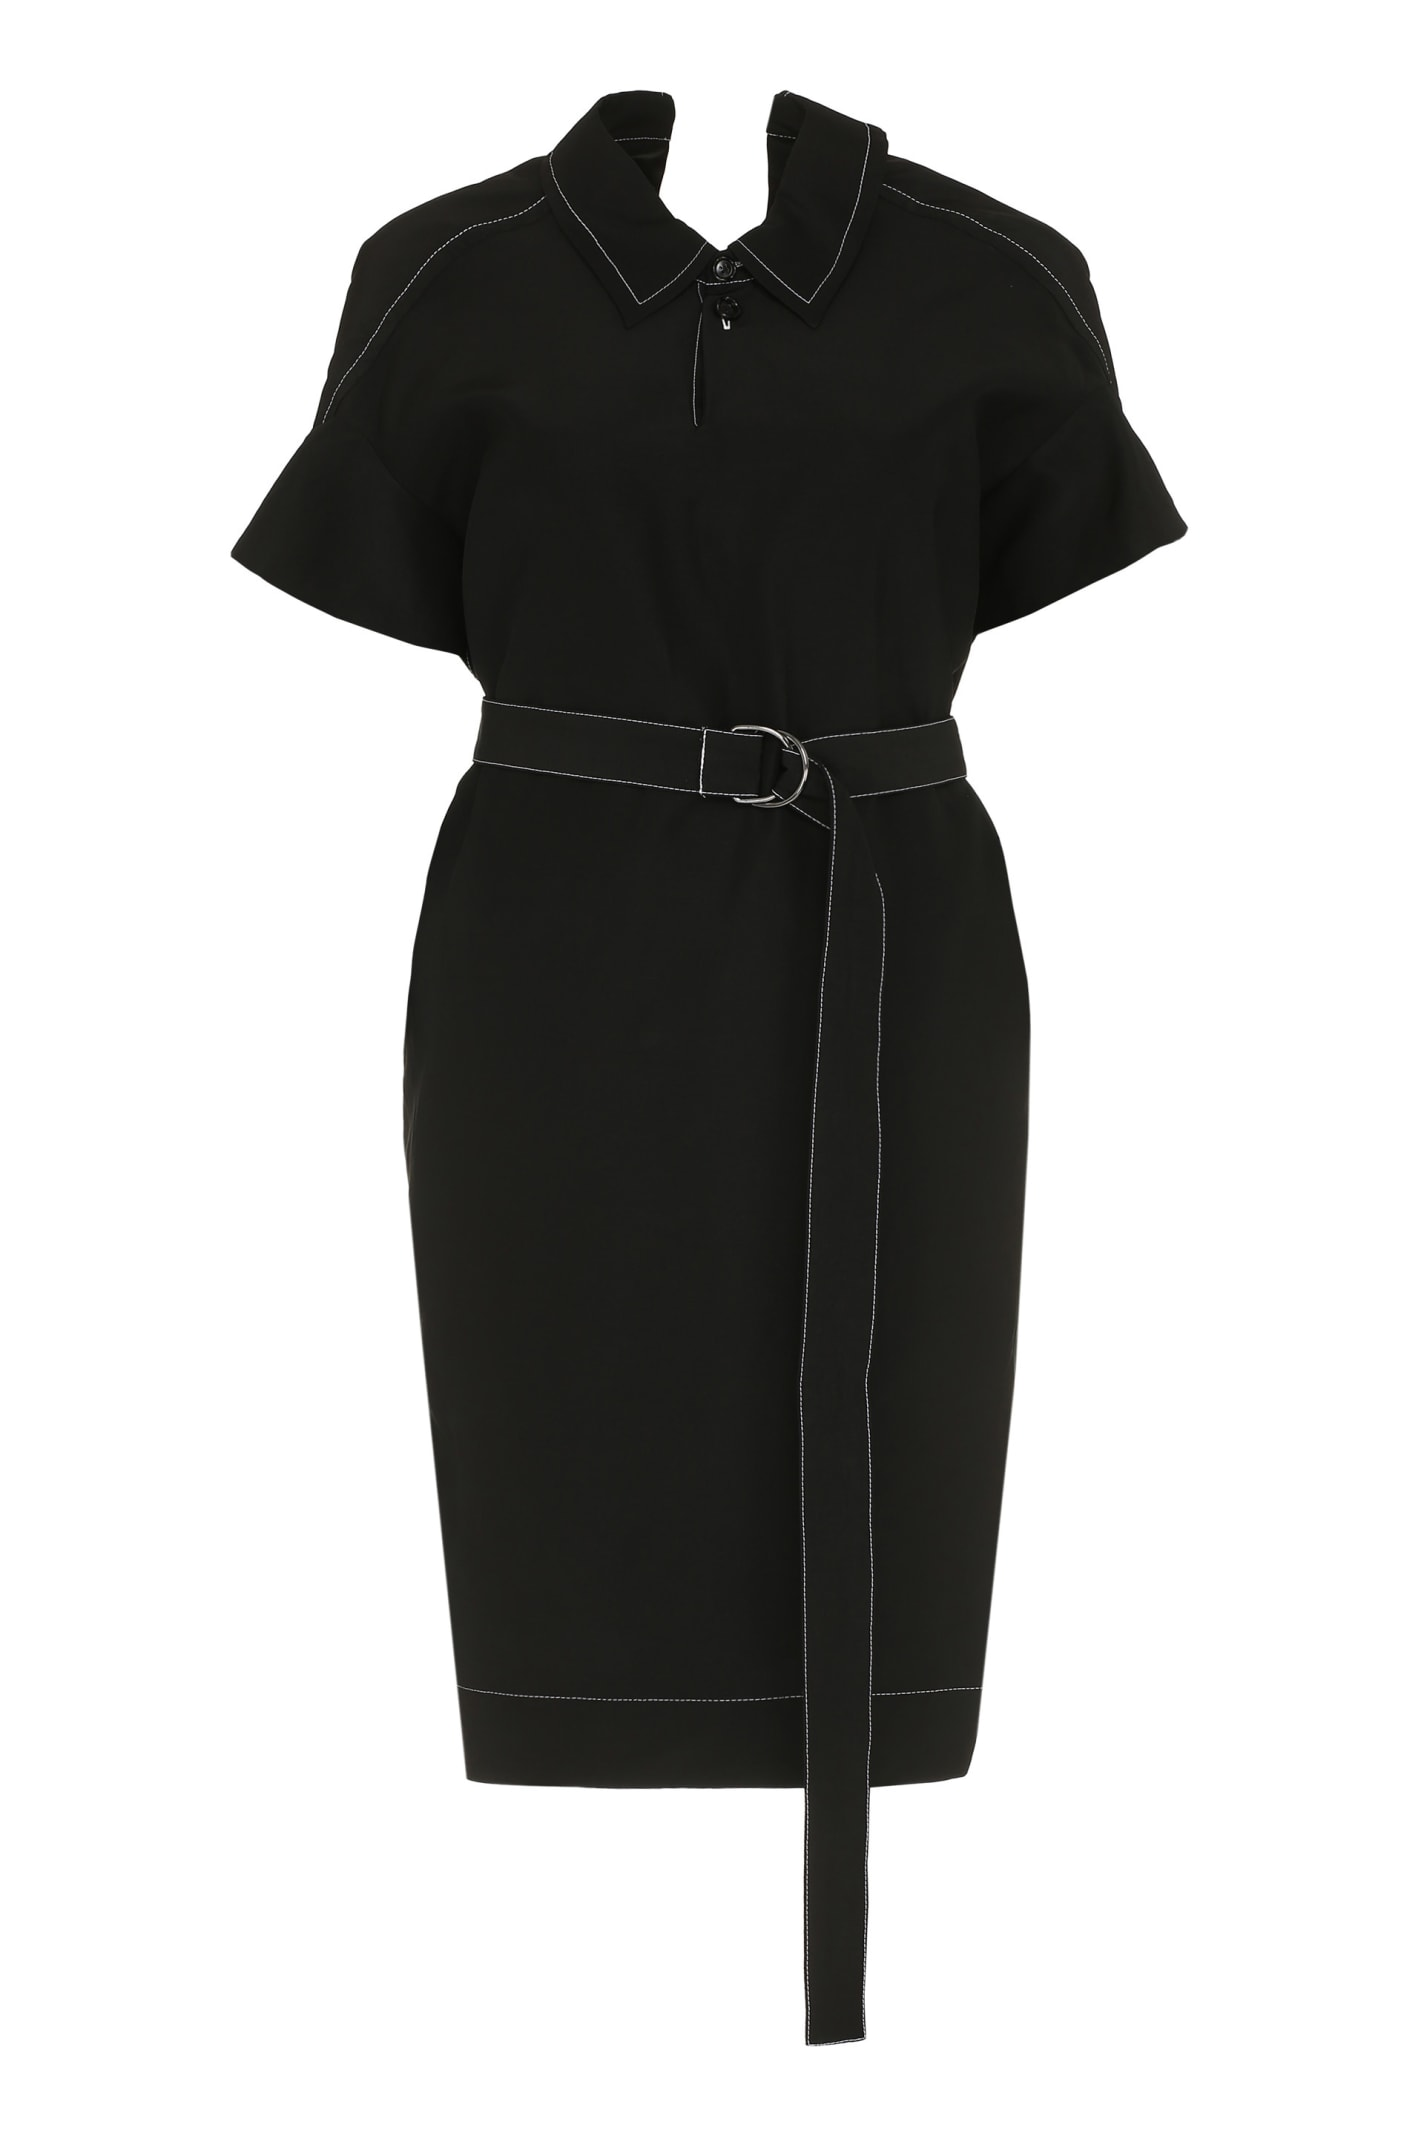 Buy Marni Belted Waist Dress online, shop Marni with free shipping